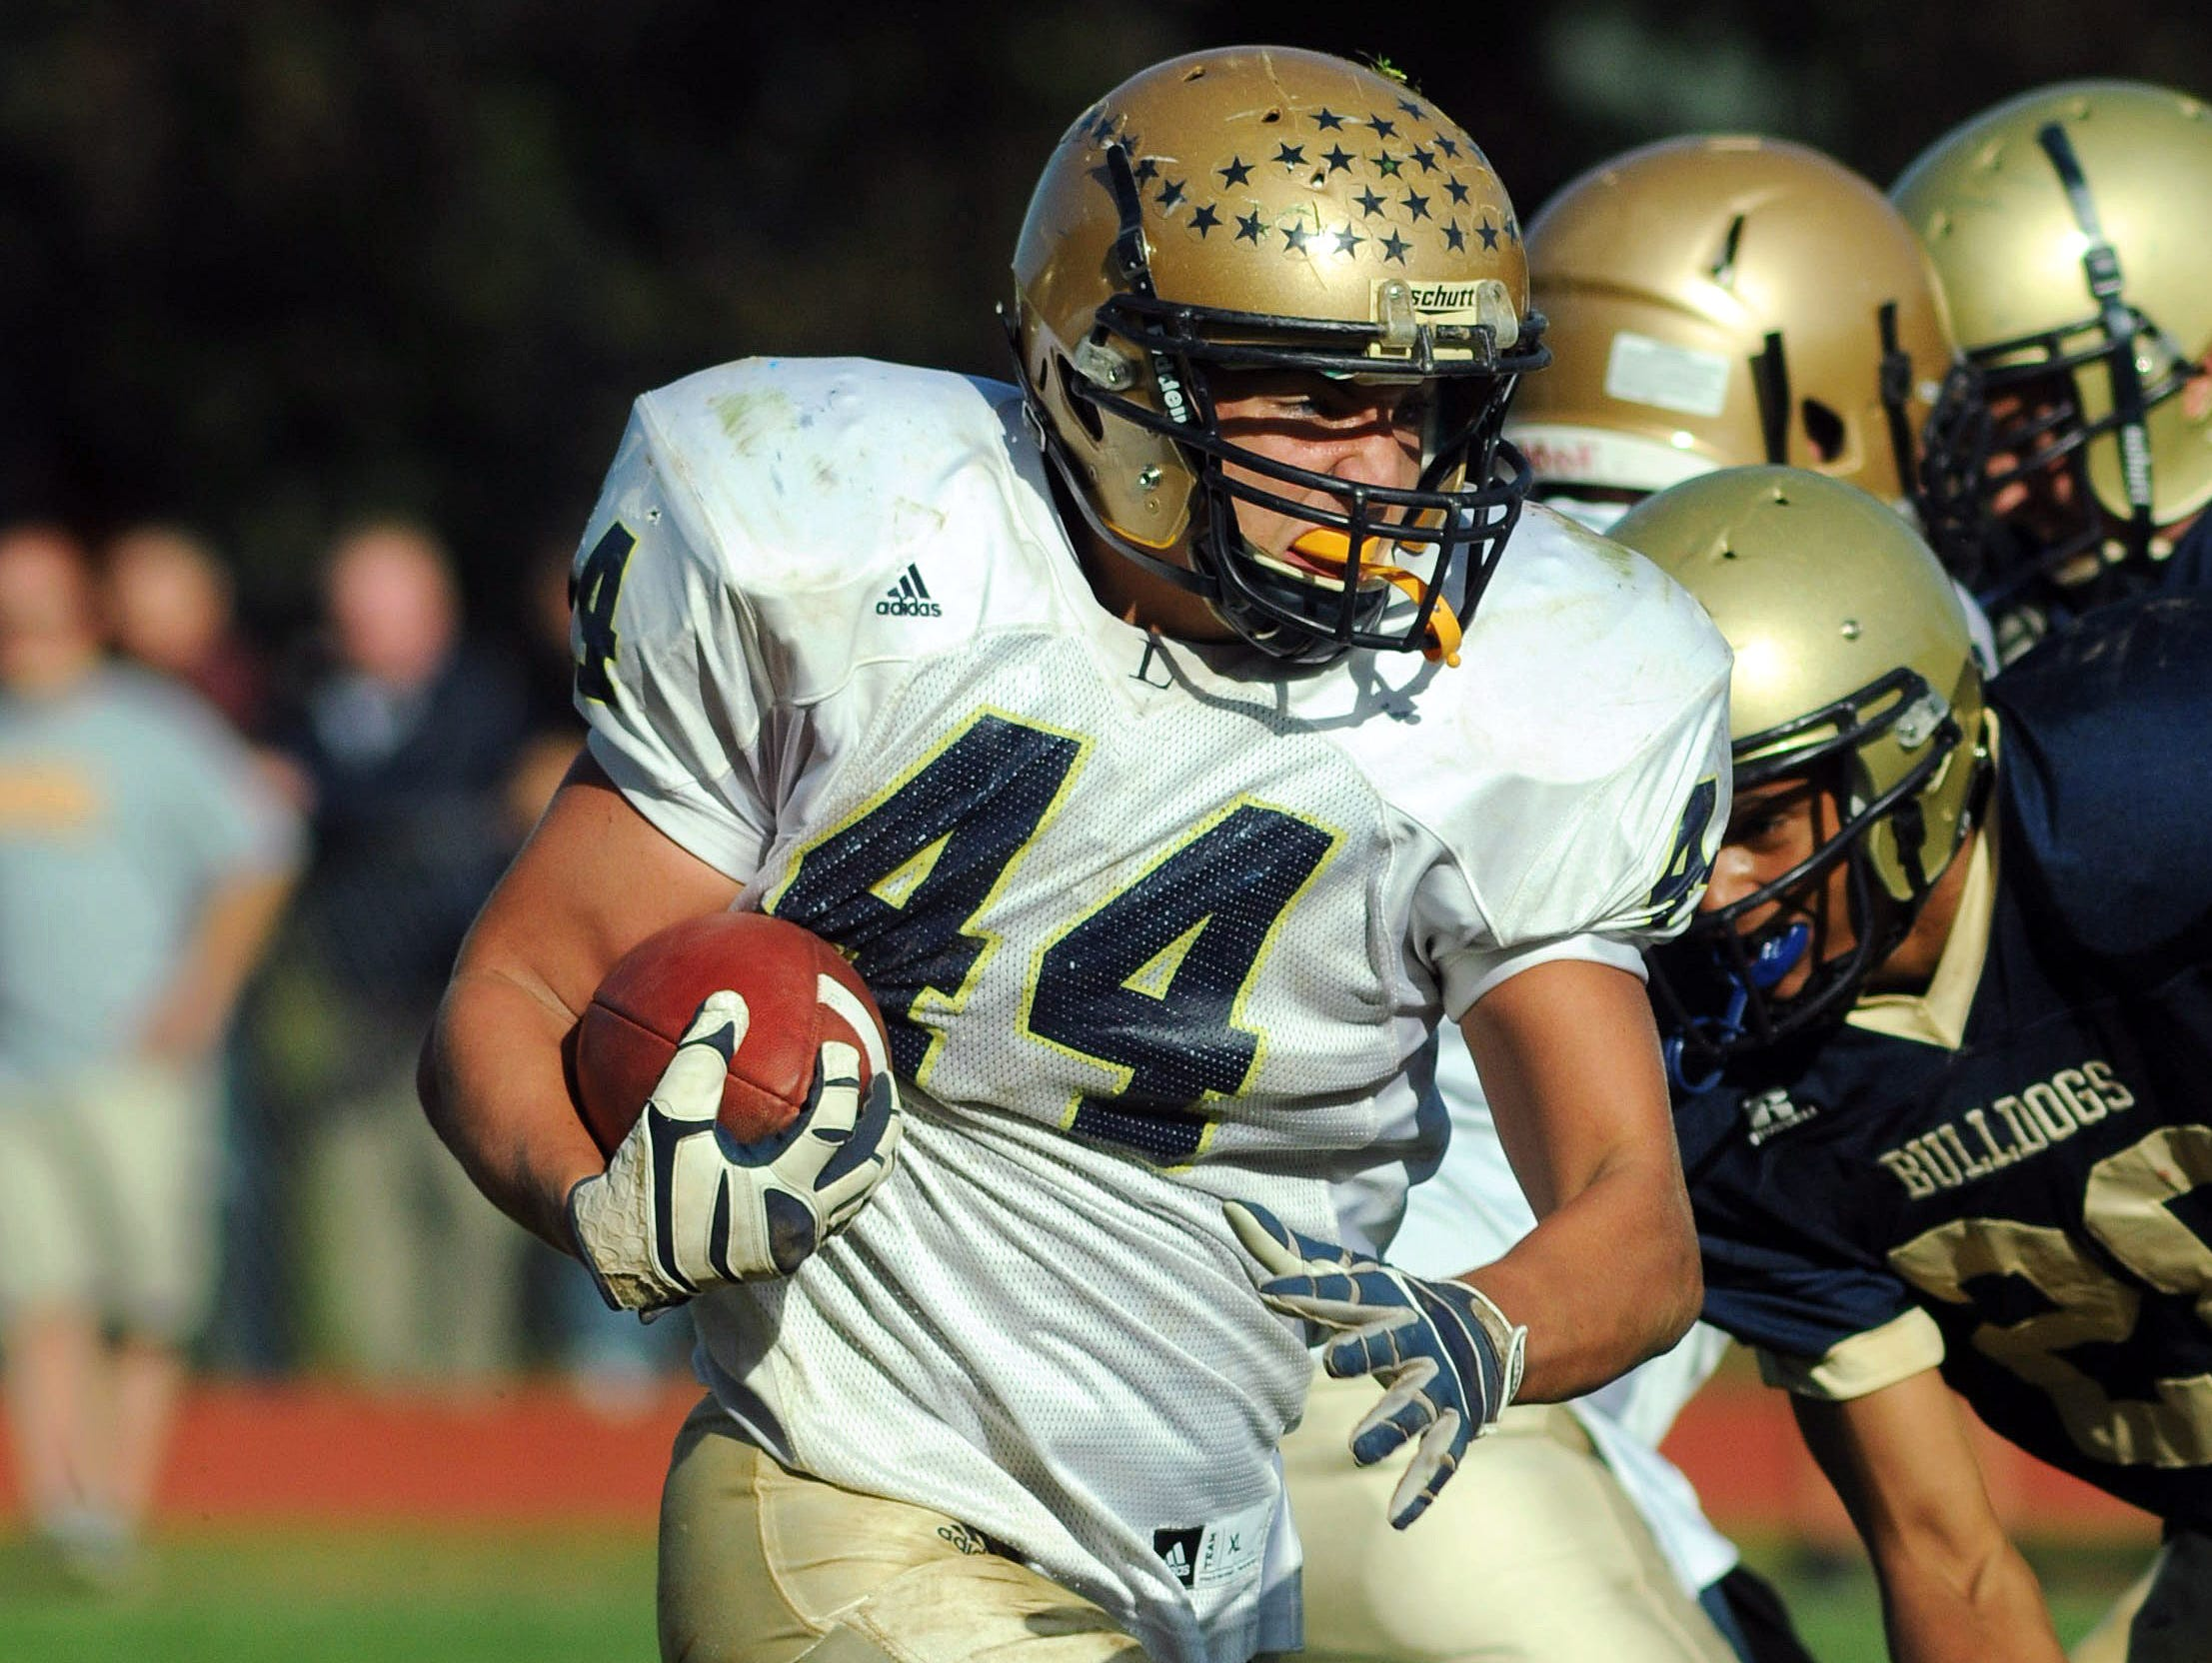 Our Lady of Lourdes' Jacob Wiegard runs the ball on Oct. 20, 2012, in the Warriors' last game against Beacon before Saturday.